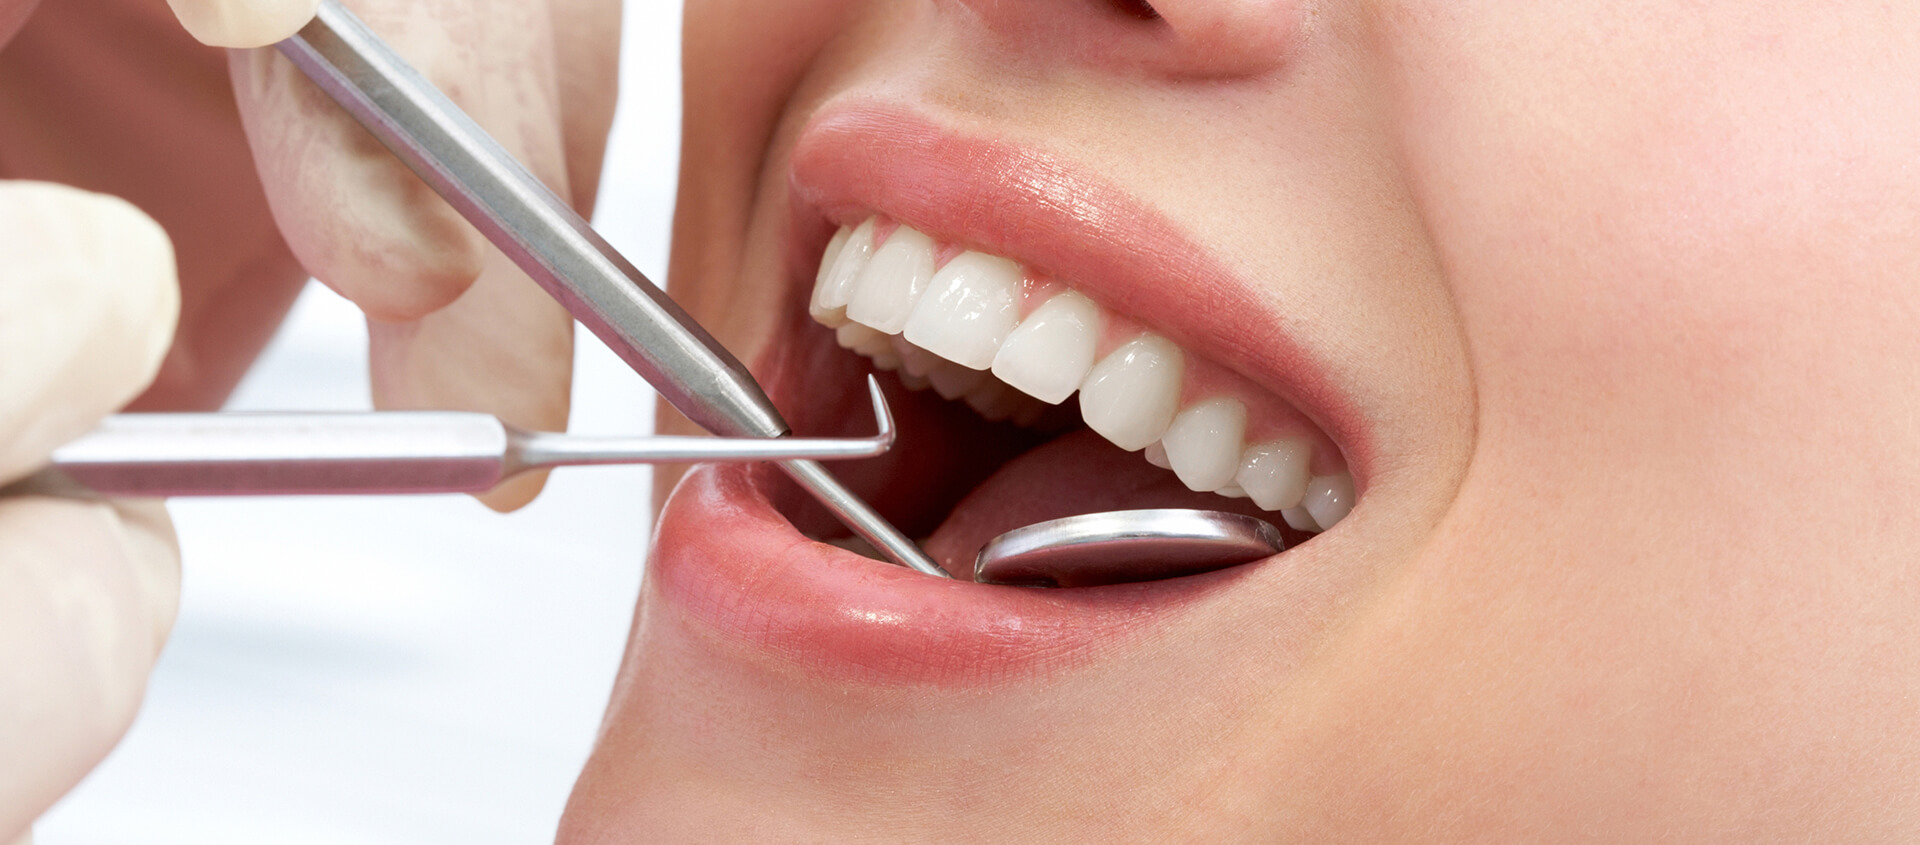 Find a Dentist for Professional Teeth Cleaning in Brandon, FL Area